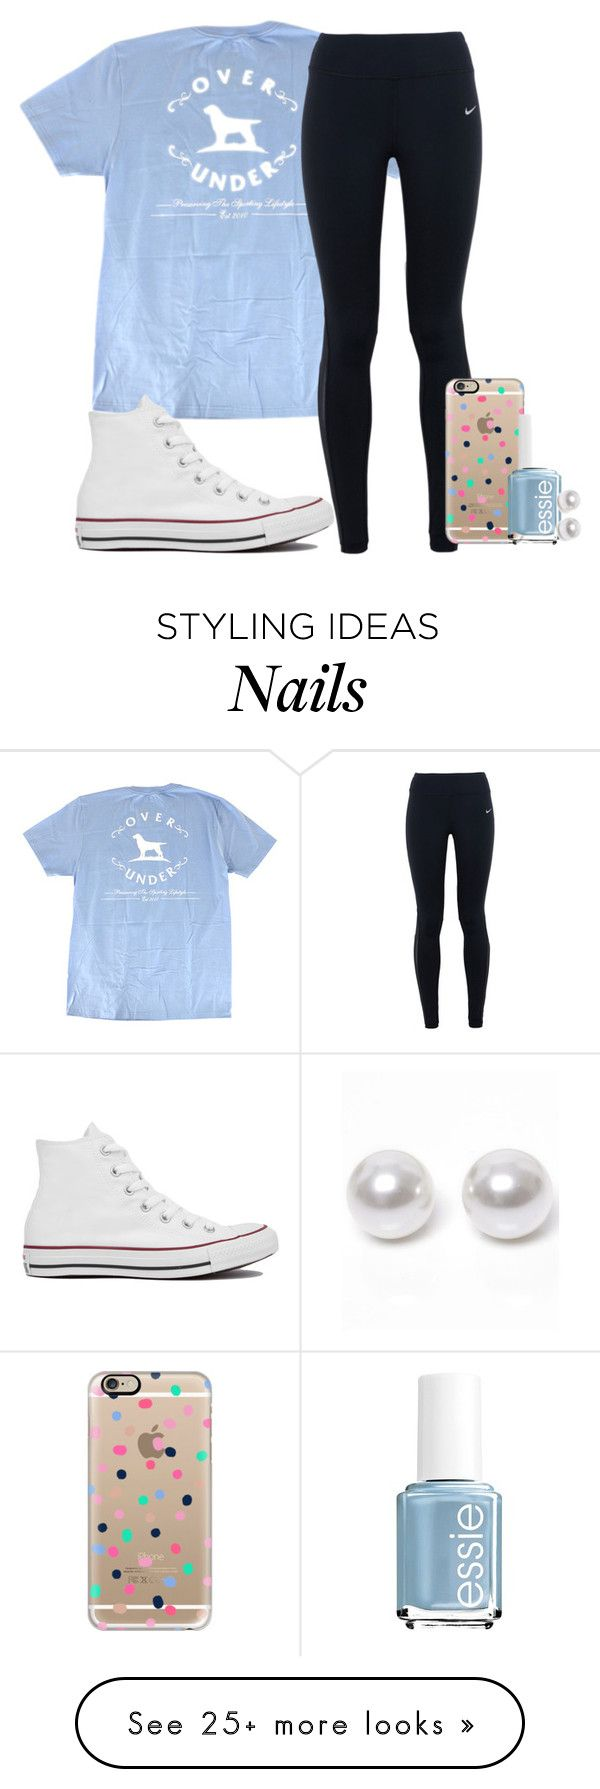 """go follow @lizannnee on instagram please"" by elizabethannee on Polyvore featuring NIKE, Converse, Casetify, Essie and Nouv-Elle"